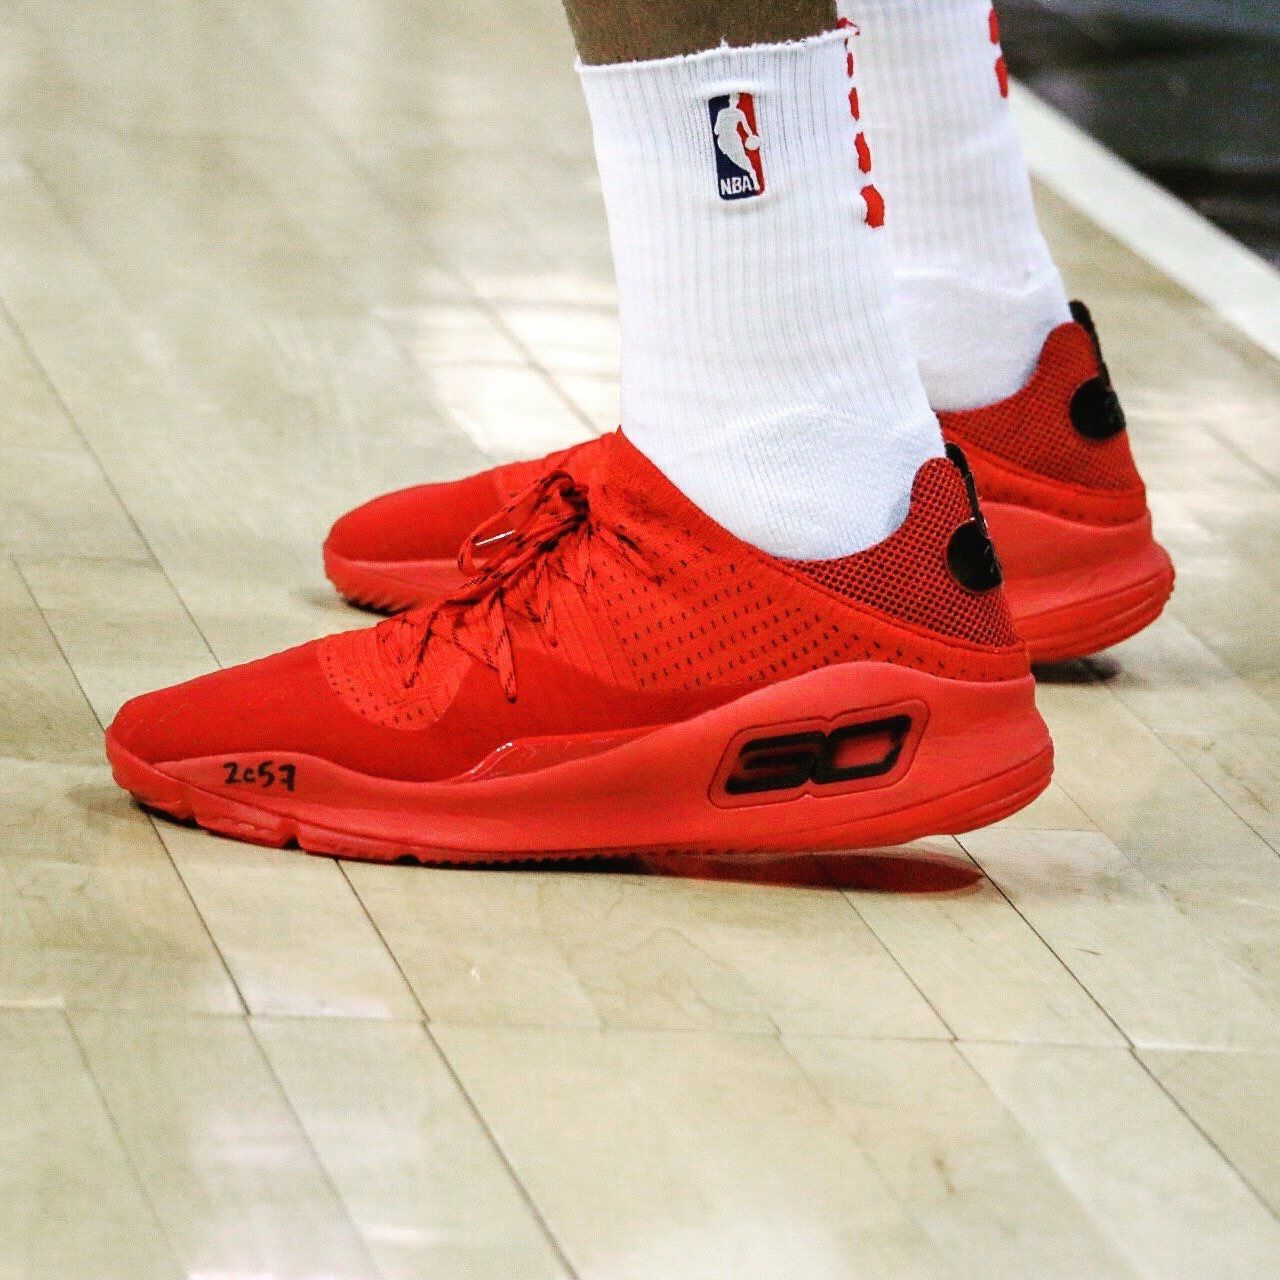 fe54218c4e8 The Under Armour Curry 4 Low